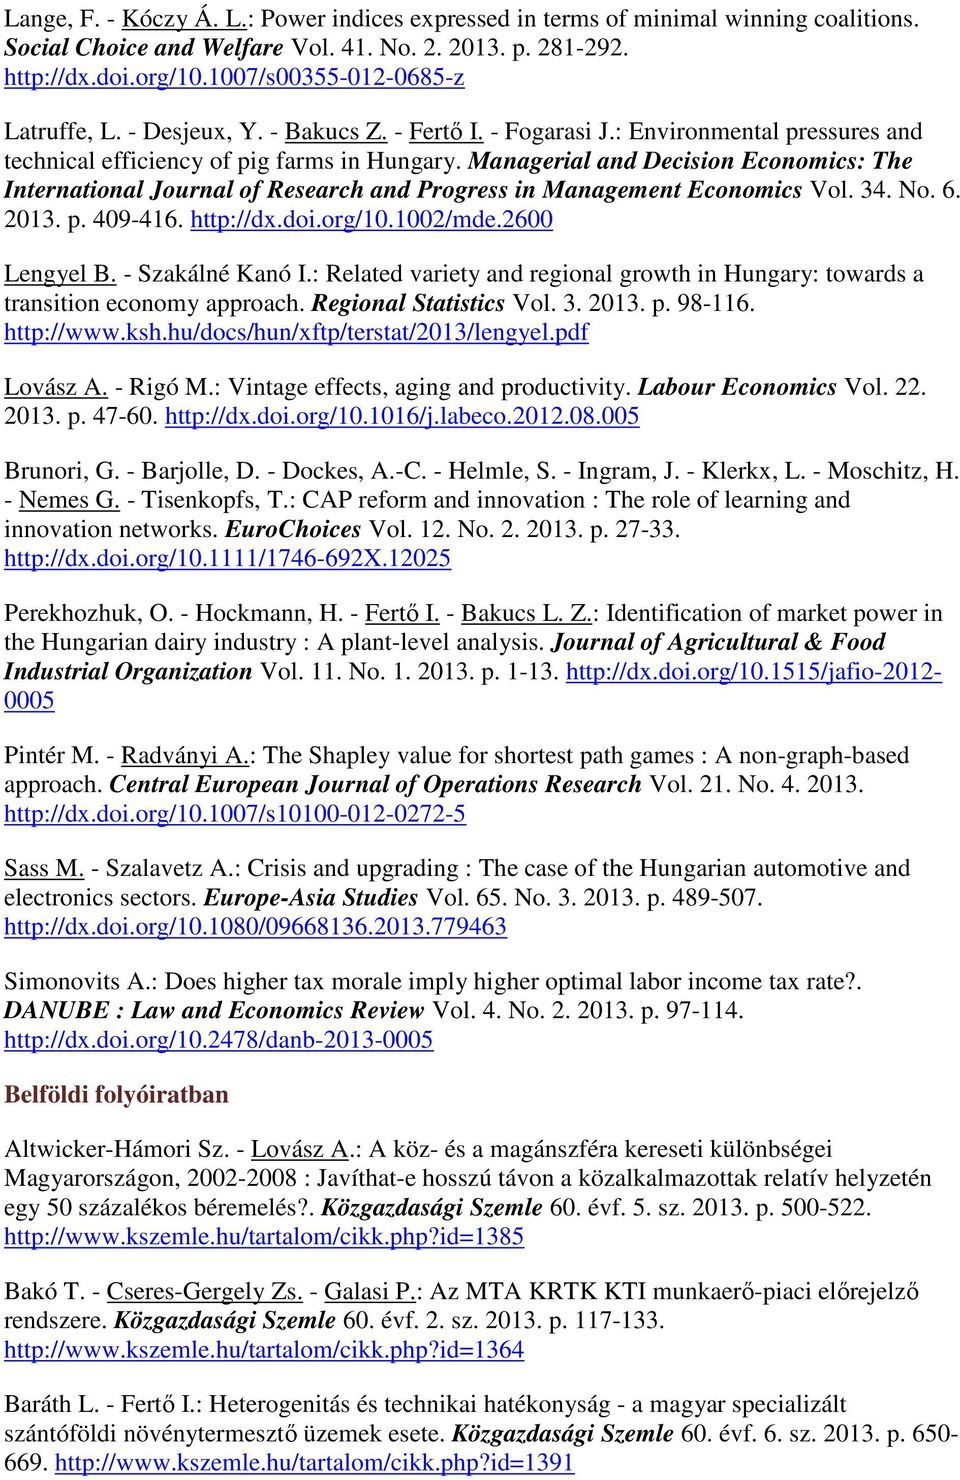 Managerial and Decision Economics: The International Journal of Research and Progress in Management Economics Vol. 34. No. 6. 2013. p. 409-416. http://dx.doi.org/10.1002/mde.2600 Lengyel B.